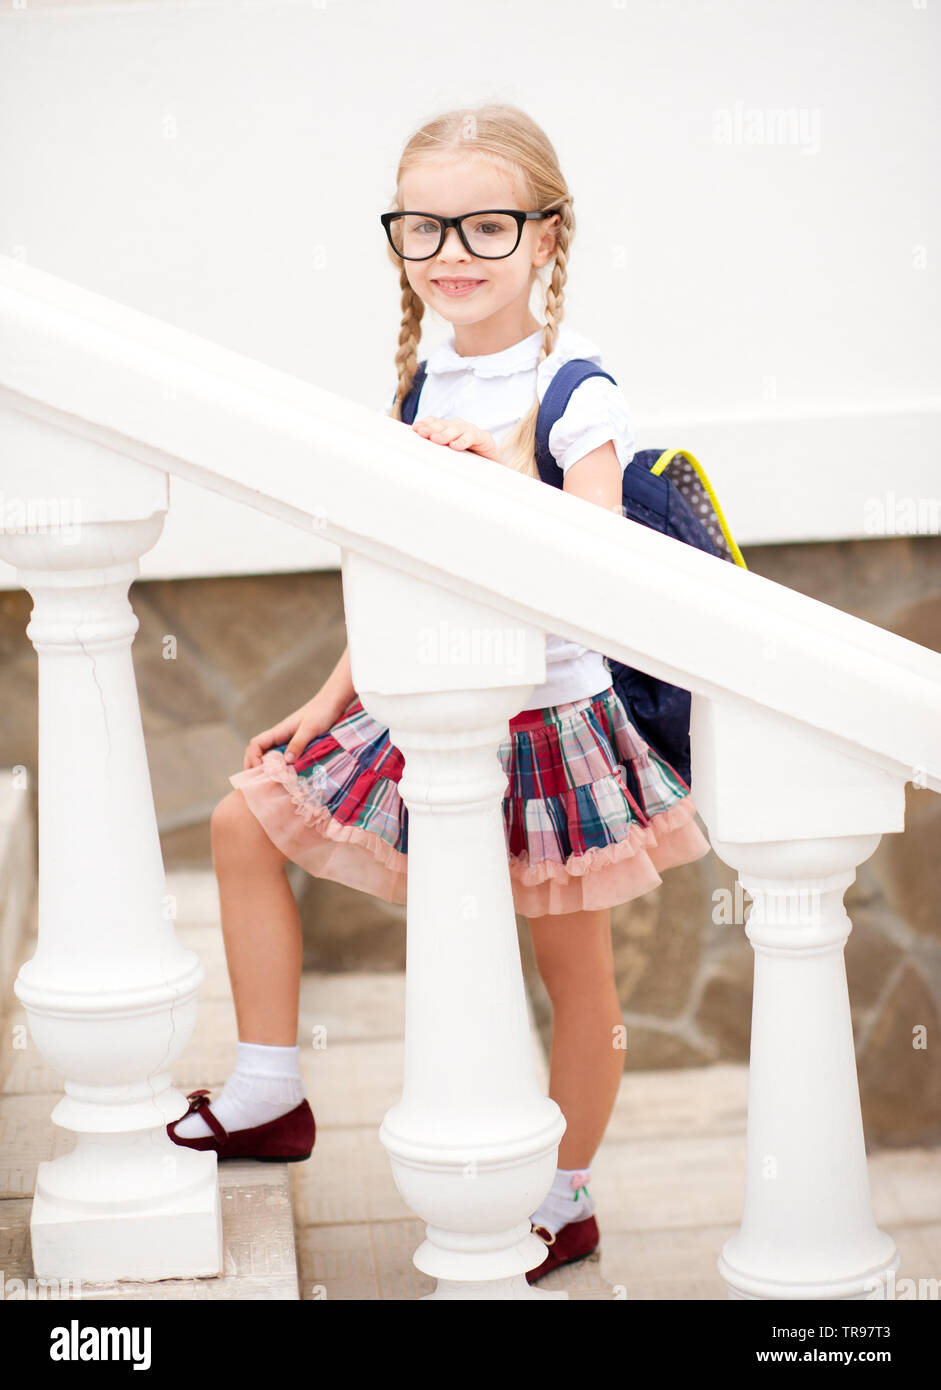 Cute child girl 6-7 year old going upstairs outdoors. Looking at camera. Back to school. Childhood. - Stock Image